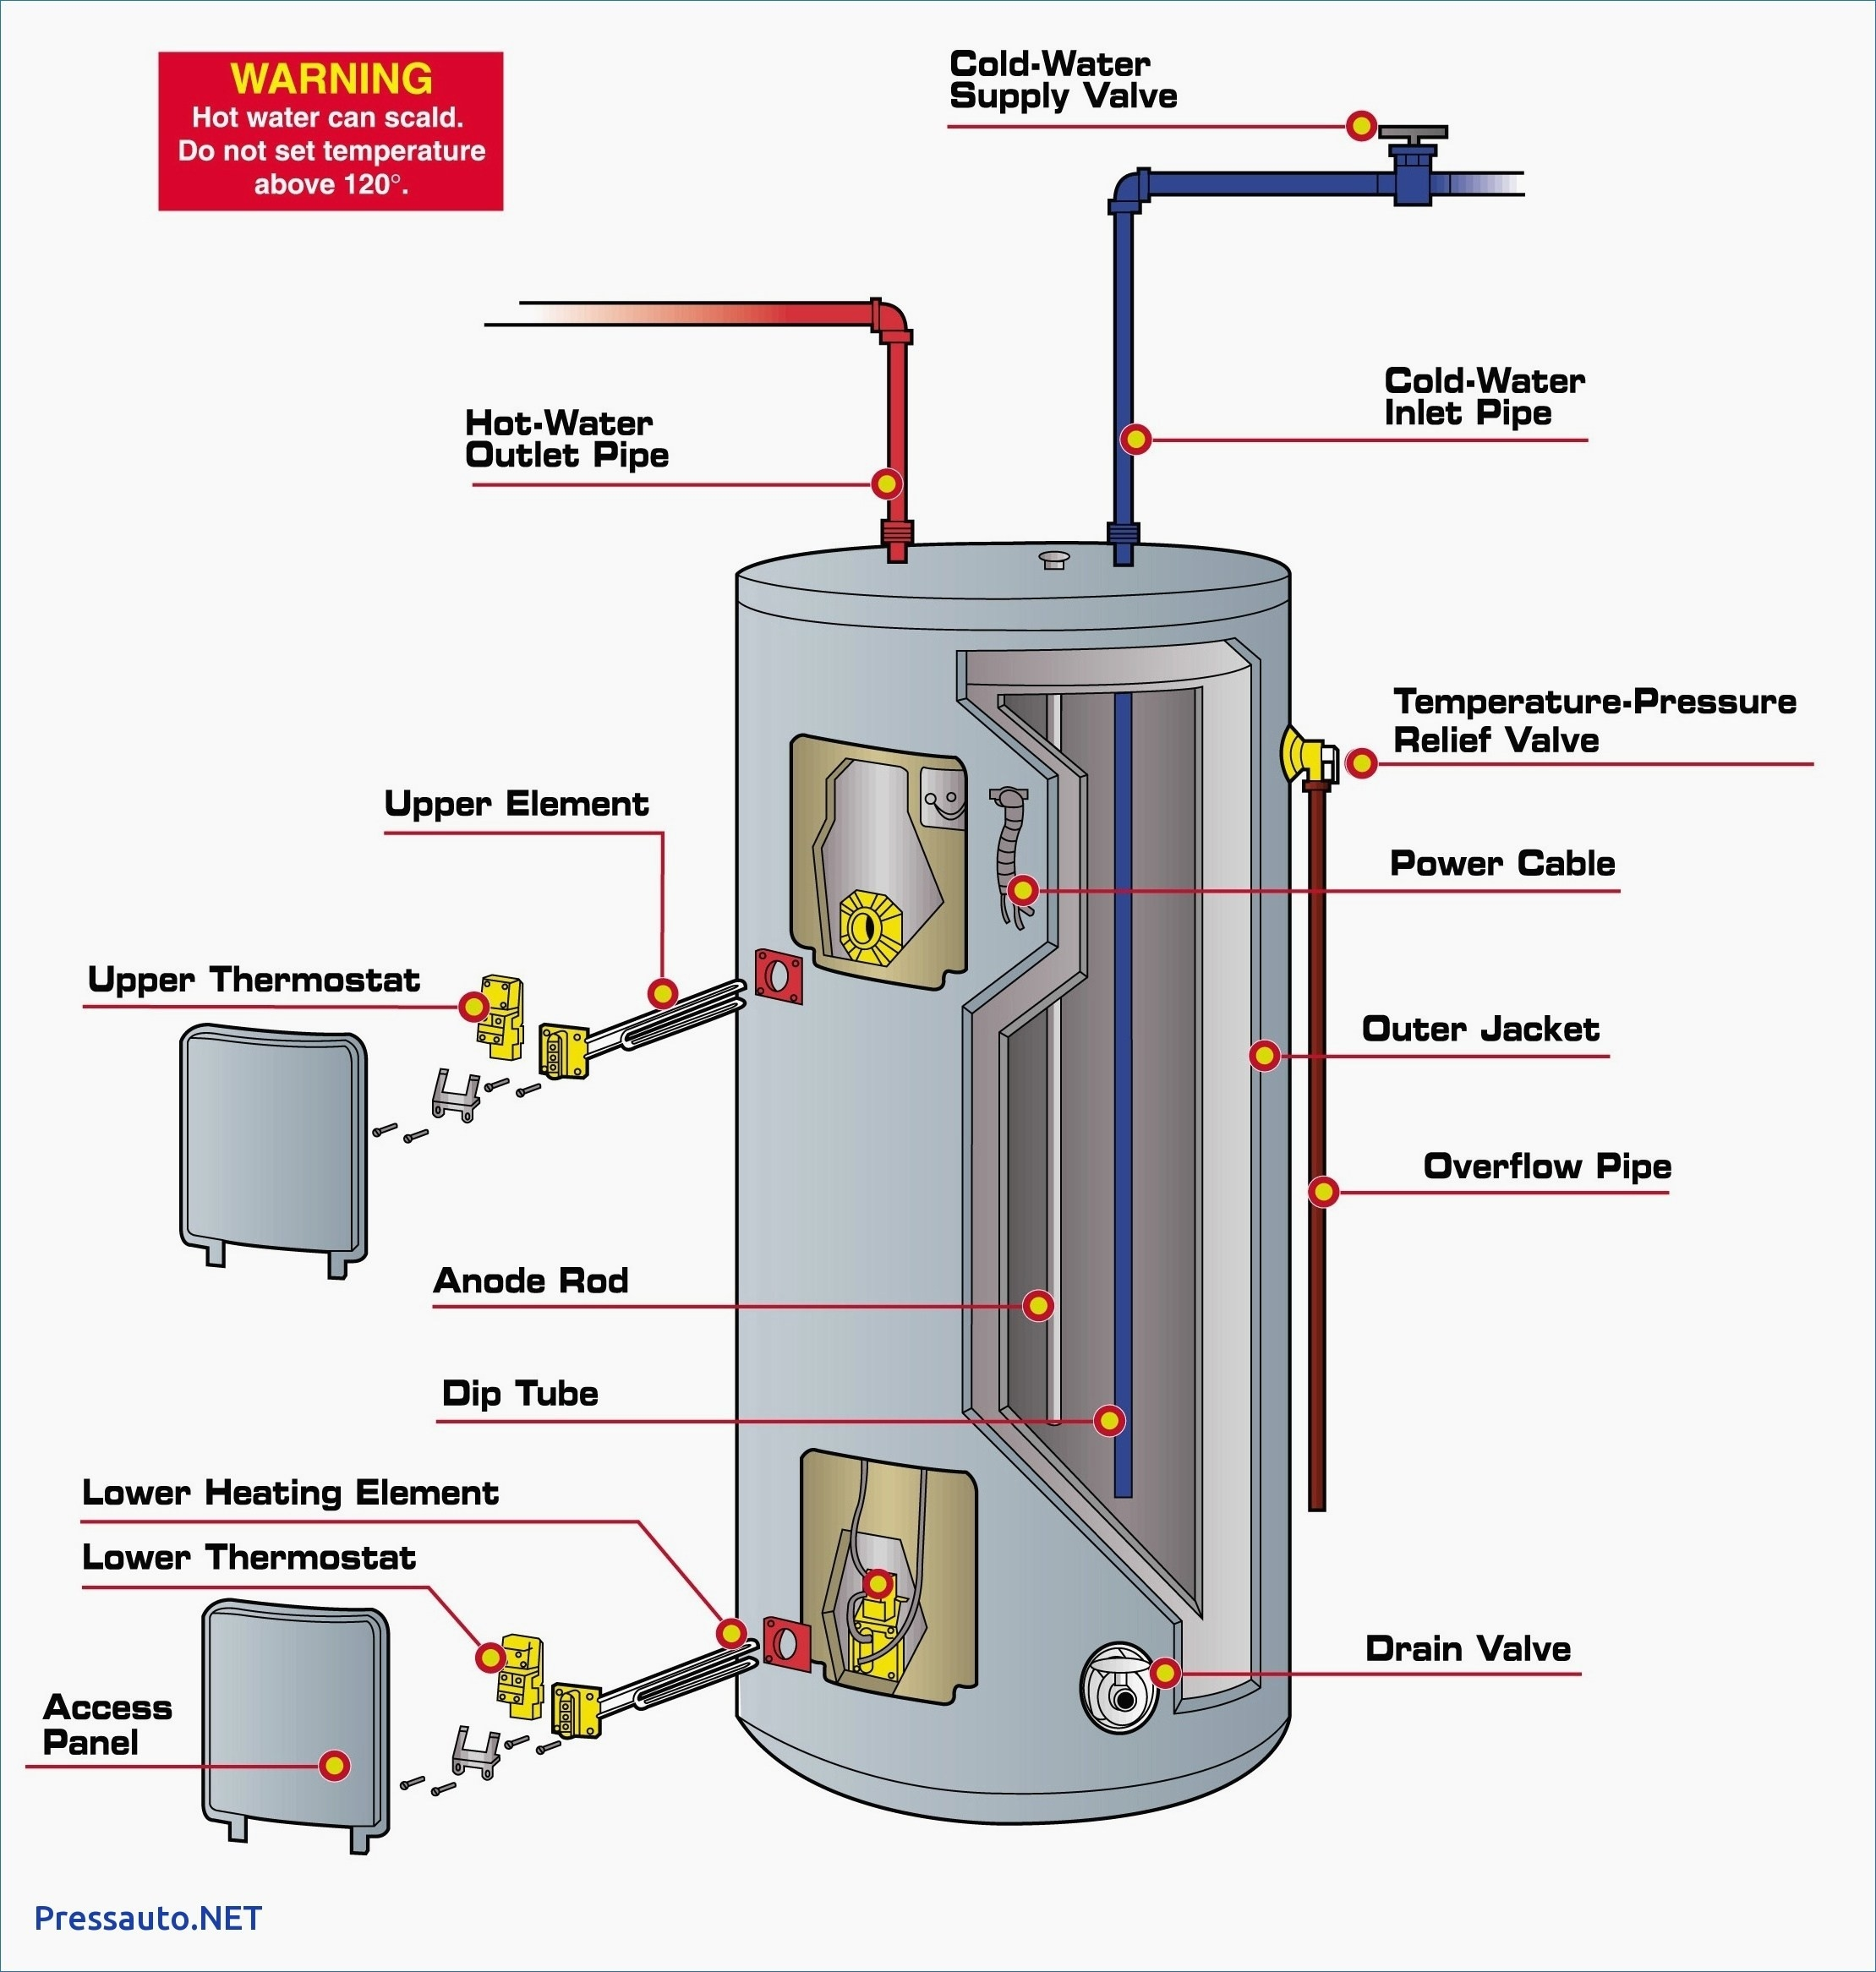 wiring diagram for hot water heater Download-Wiring Diagram Electric Water Heater Fresh New Hot Water Heater Wiring Diagram Diagram 15-p